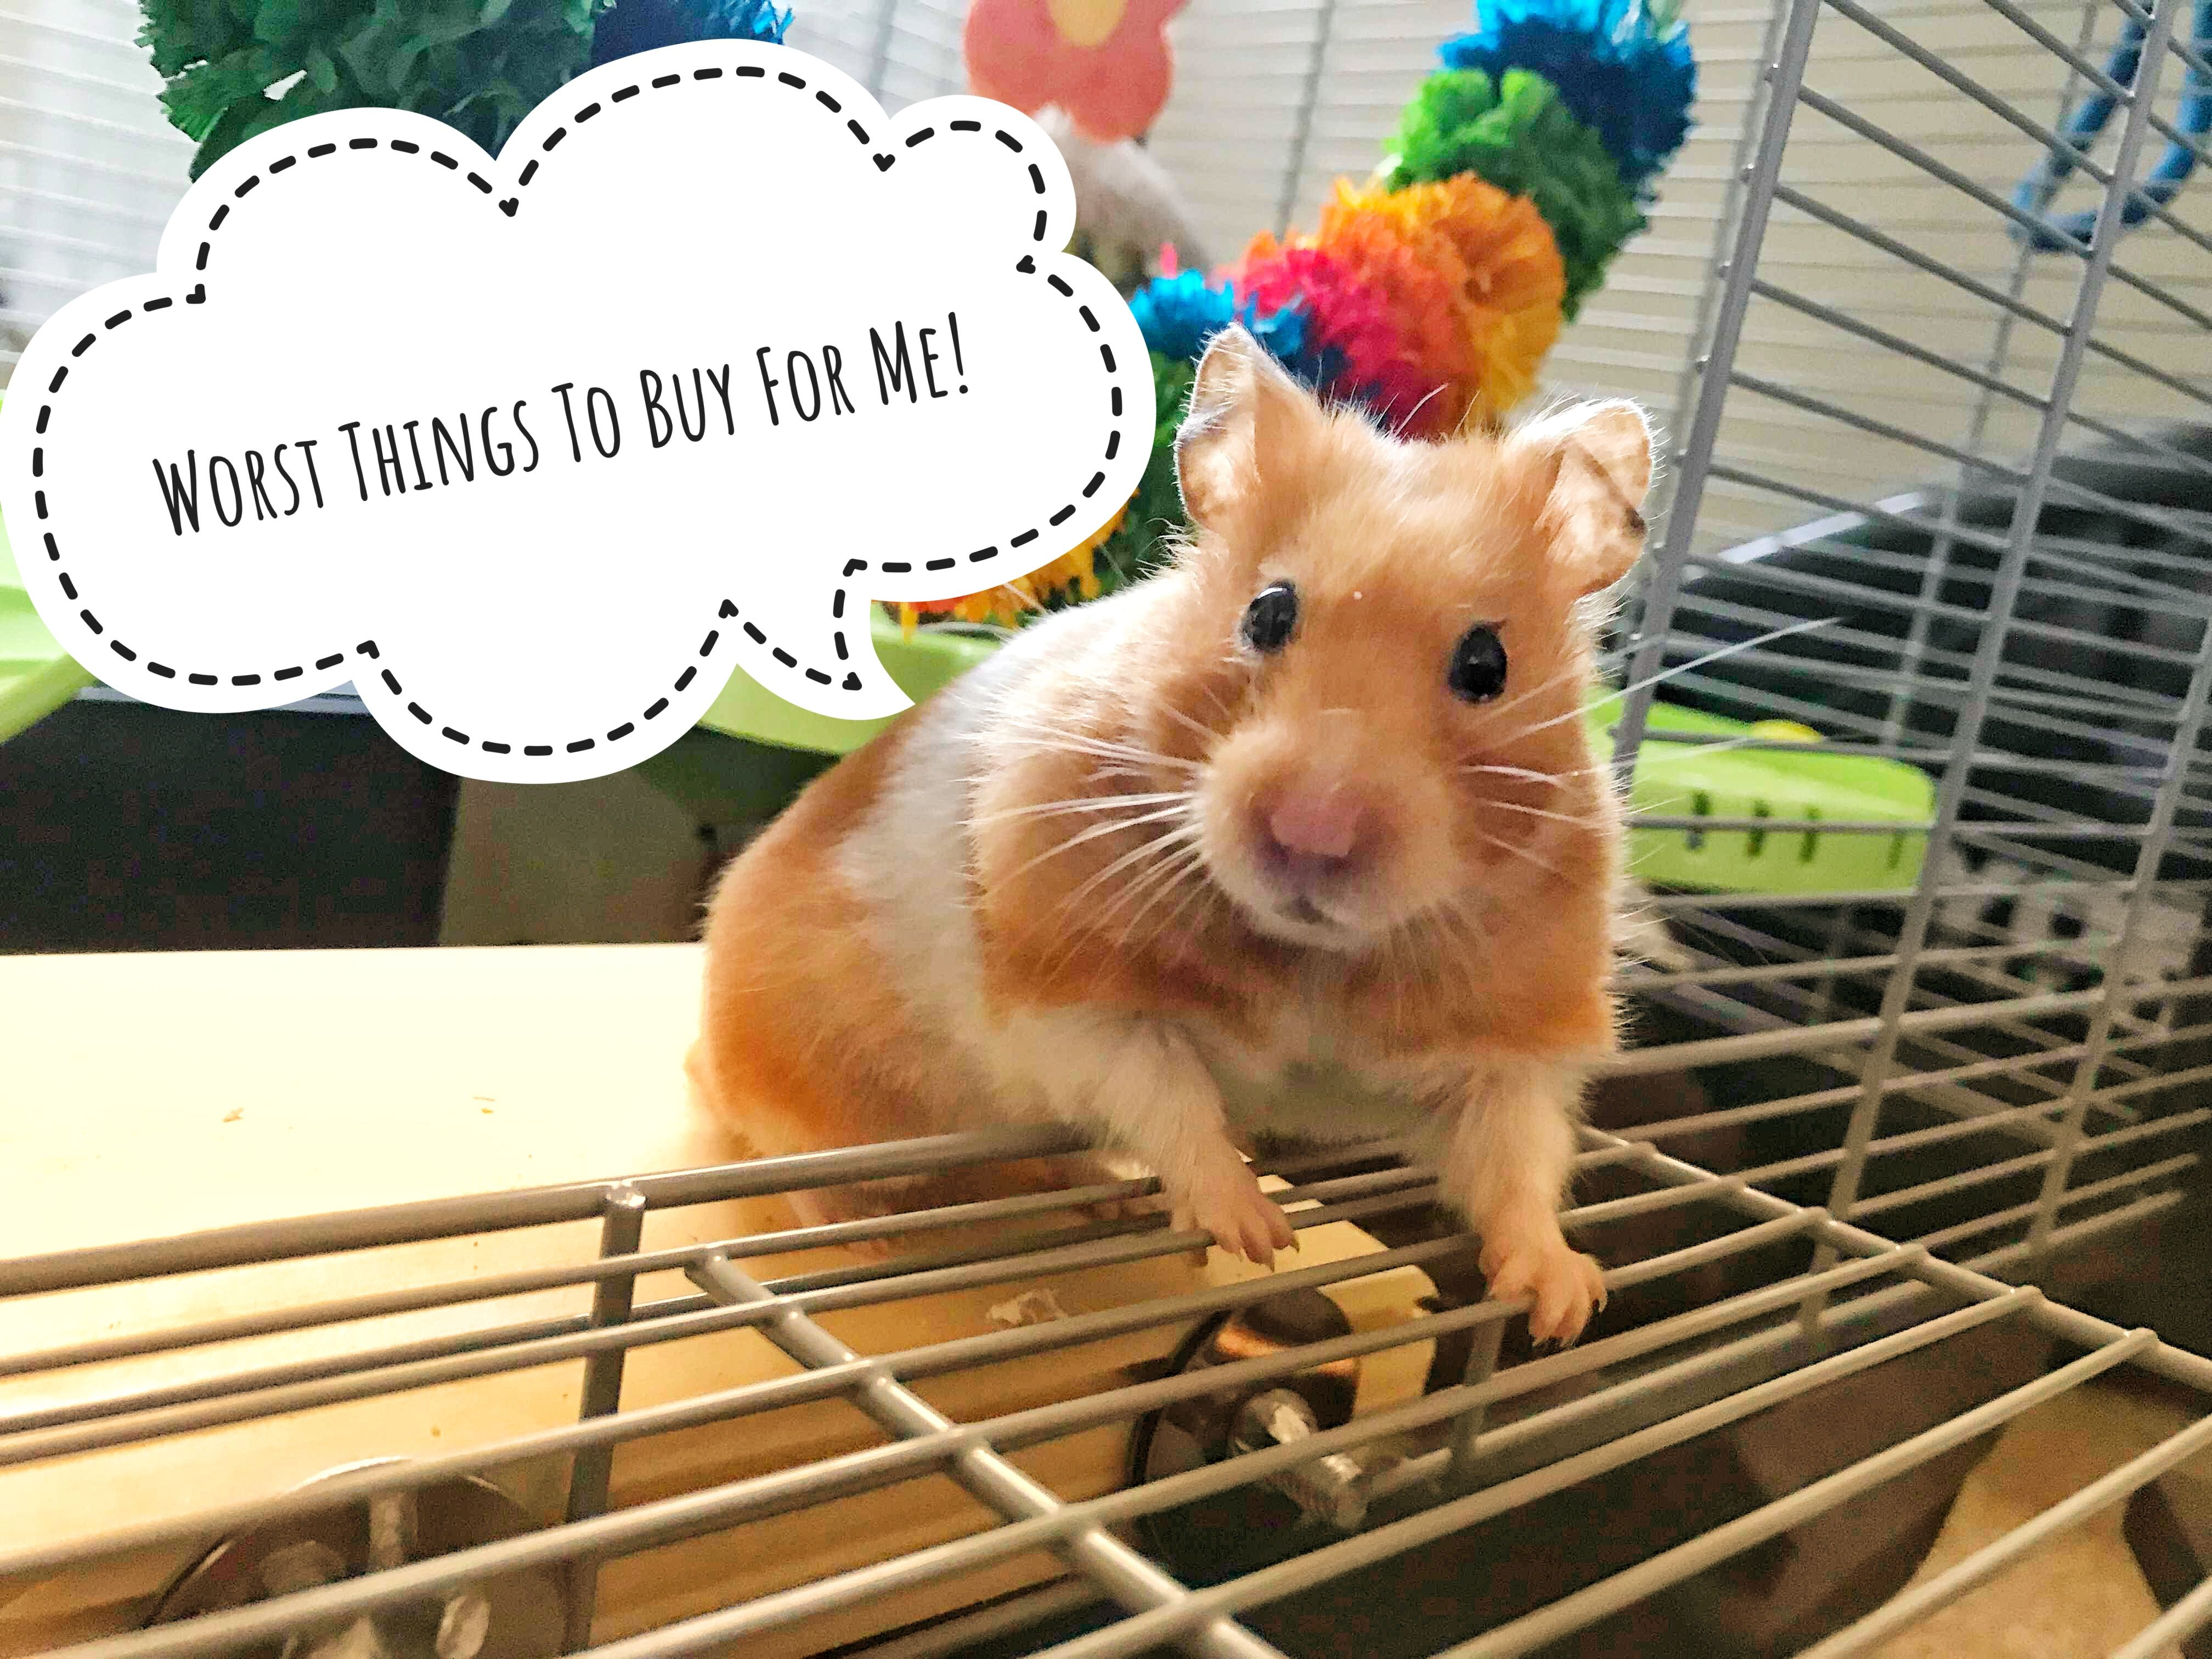 The Worst Things To Buy For Your Hamster! Hamster care